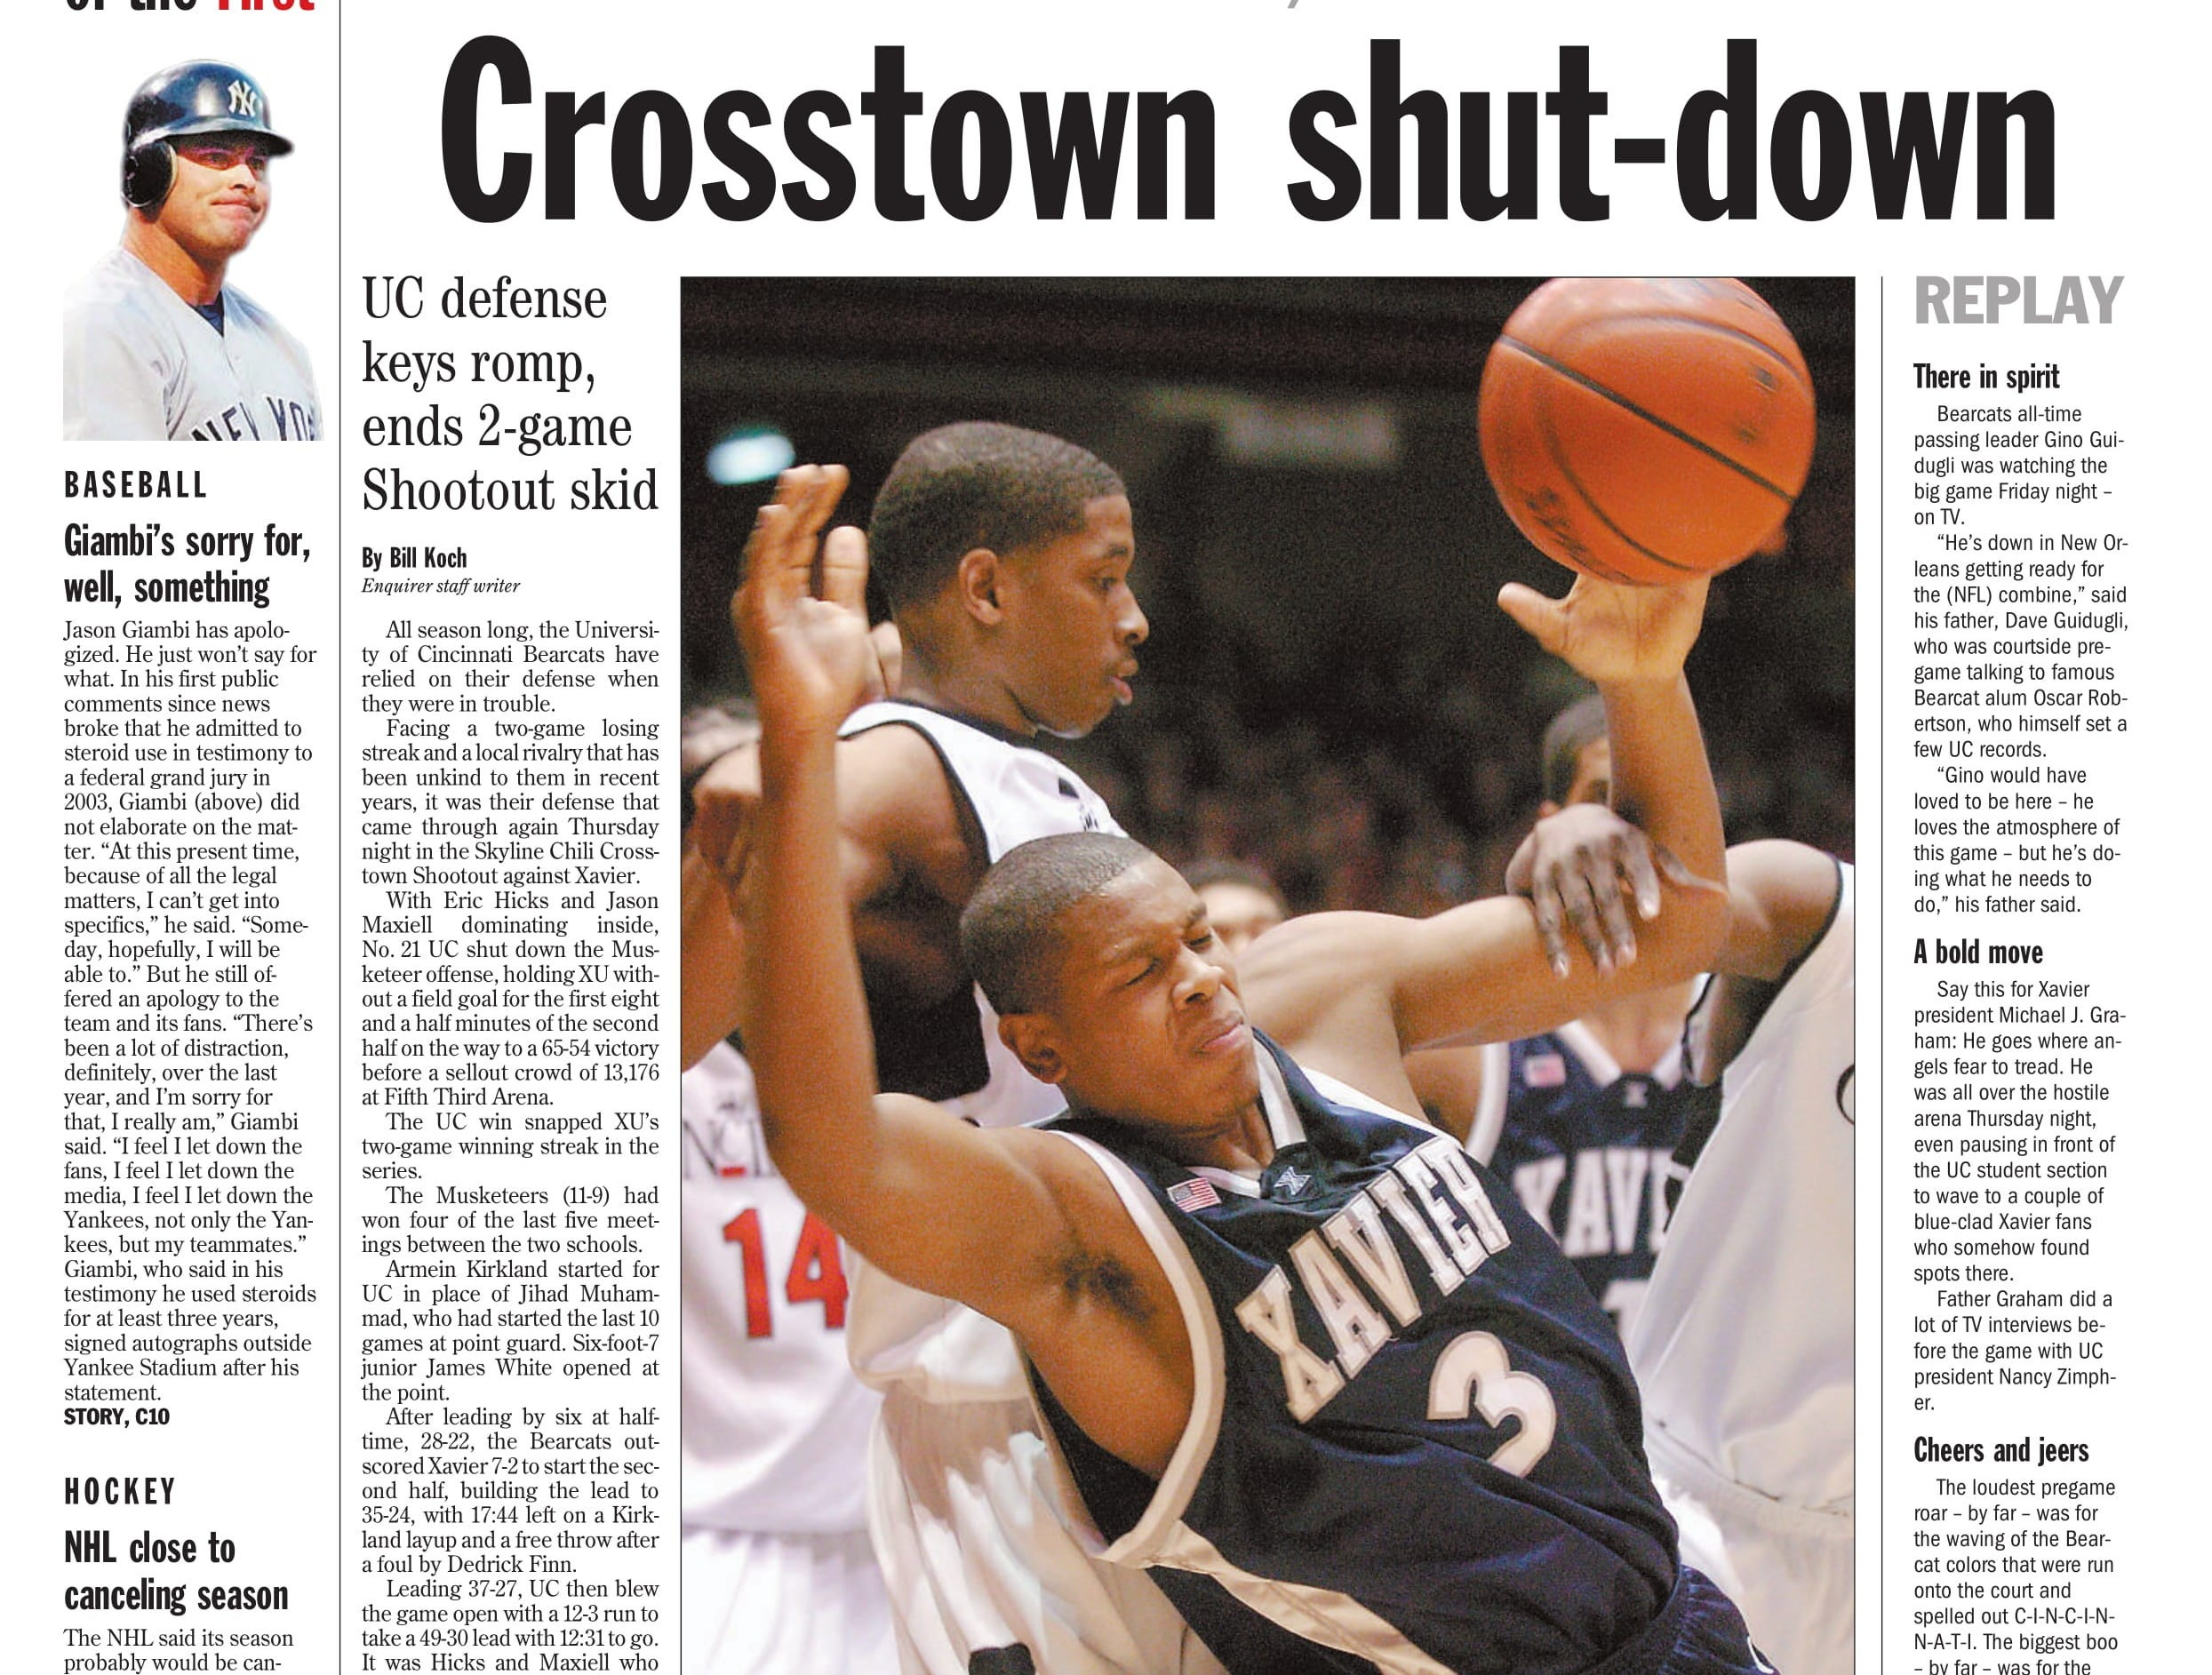 Bob Huggins' final Crosstown Shootout ended in a 65-54 UC victory in the 2004-05 season.